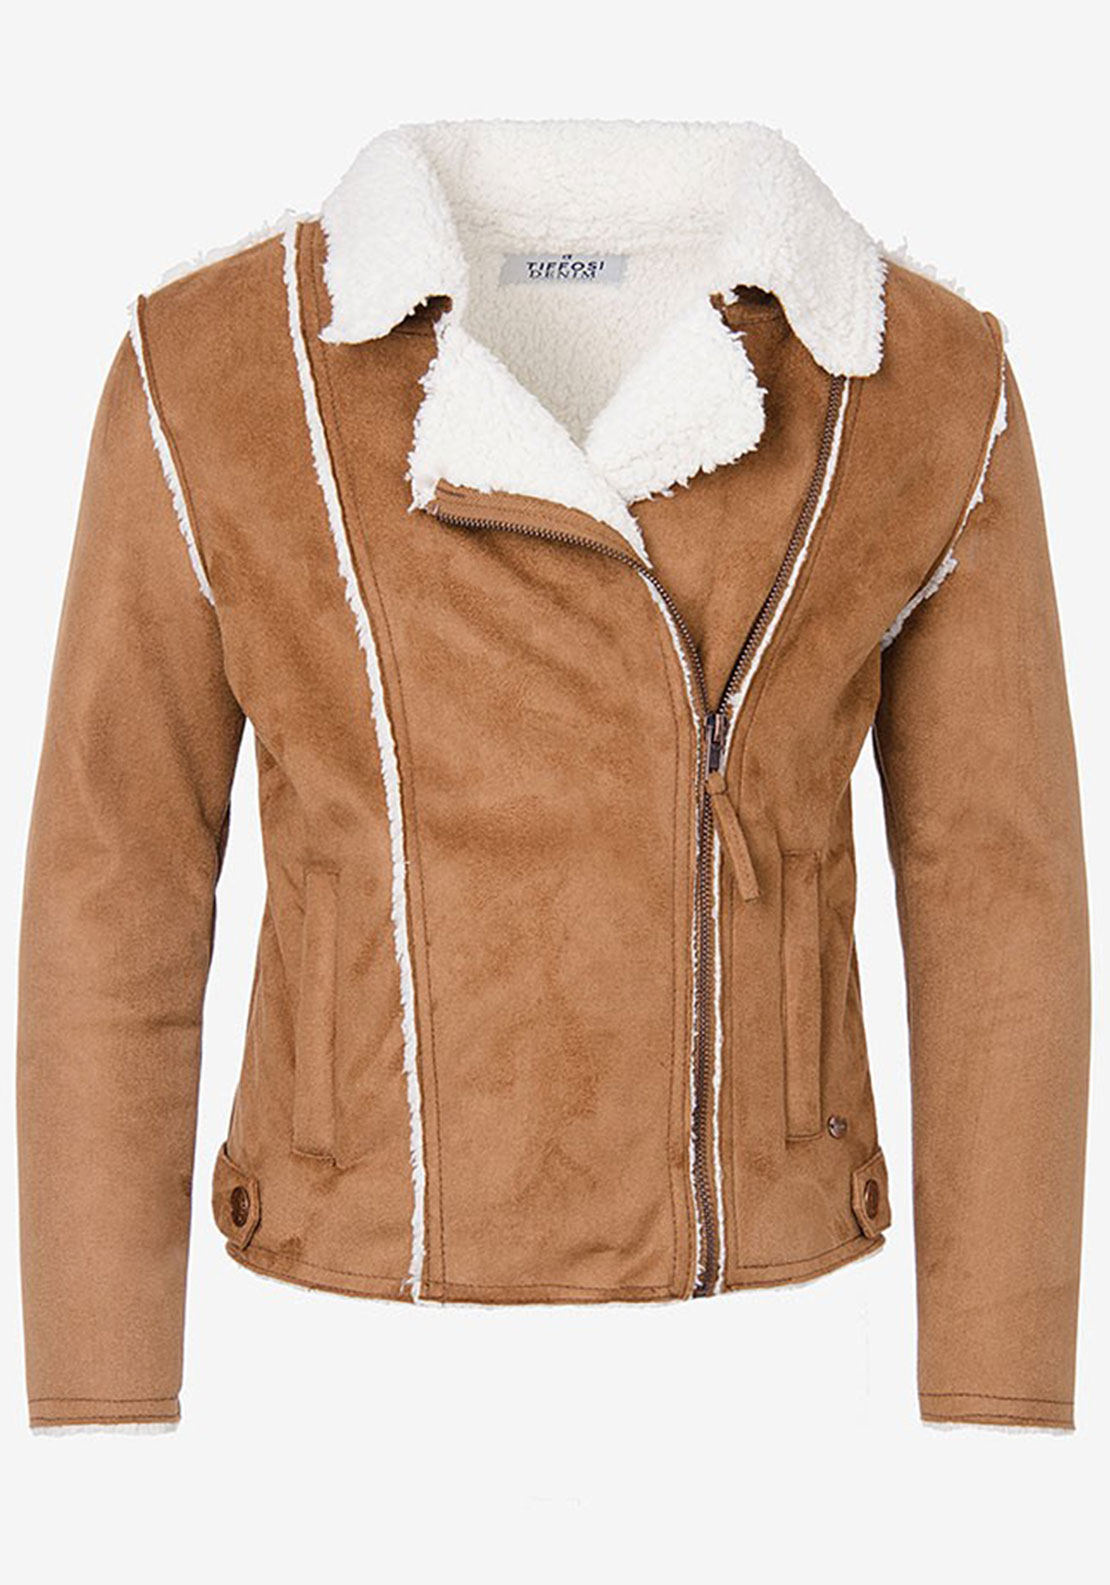 Tiffosi Girls Sot Faux Suede Shearling Jacket, Tan